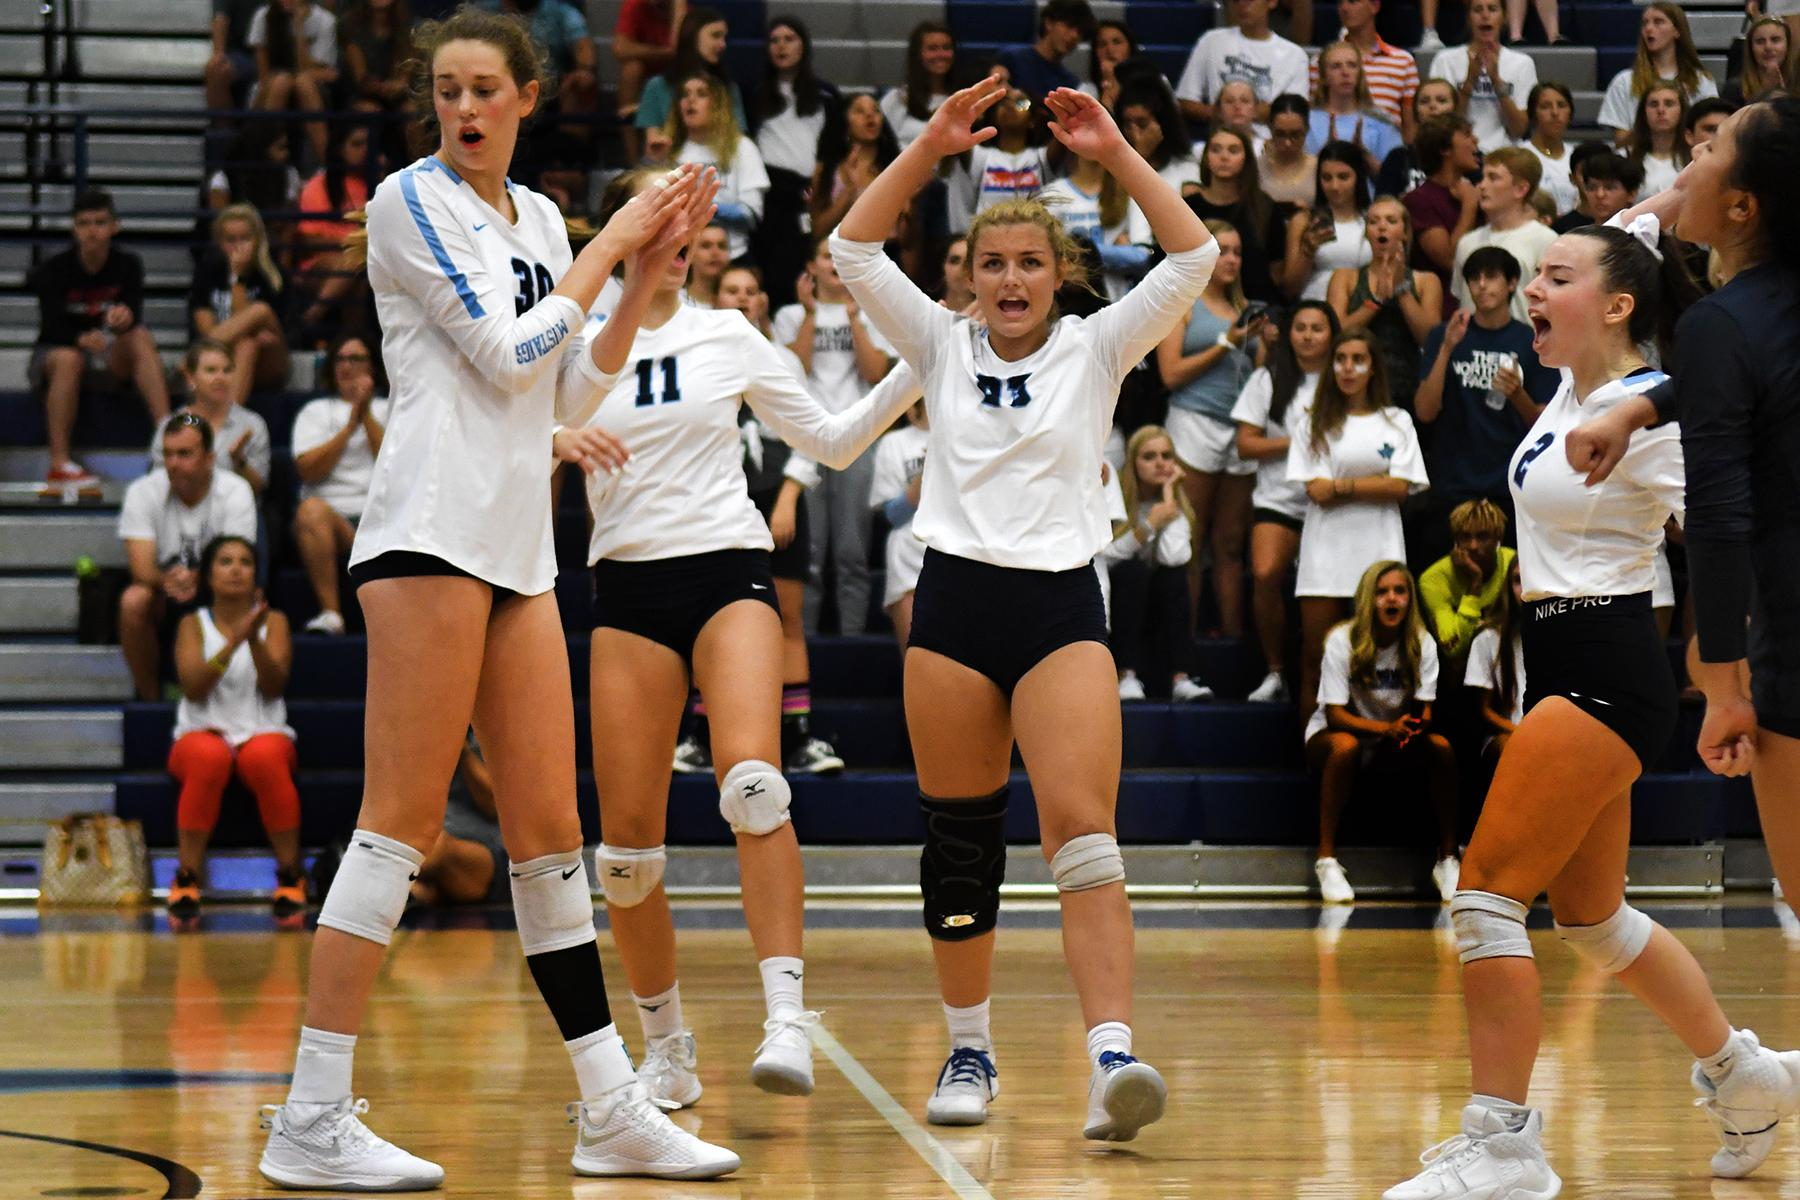 Volleyball roundup: Kingwood defeats rival K-Park in five-set thriller